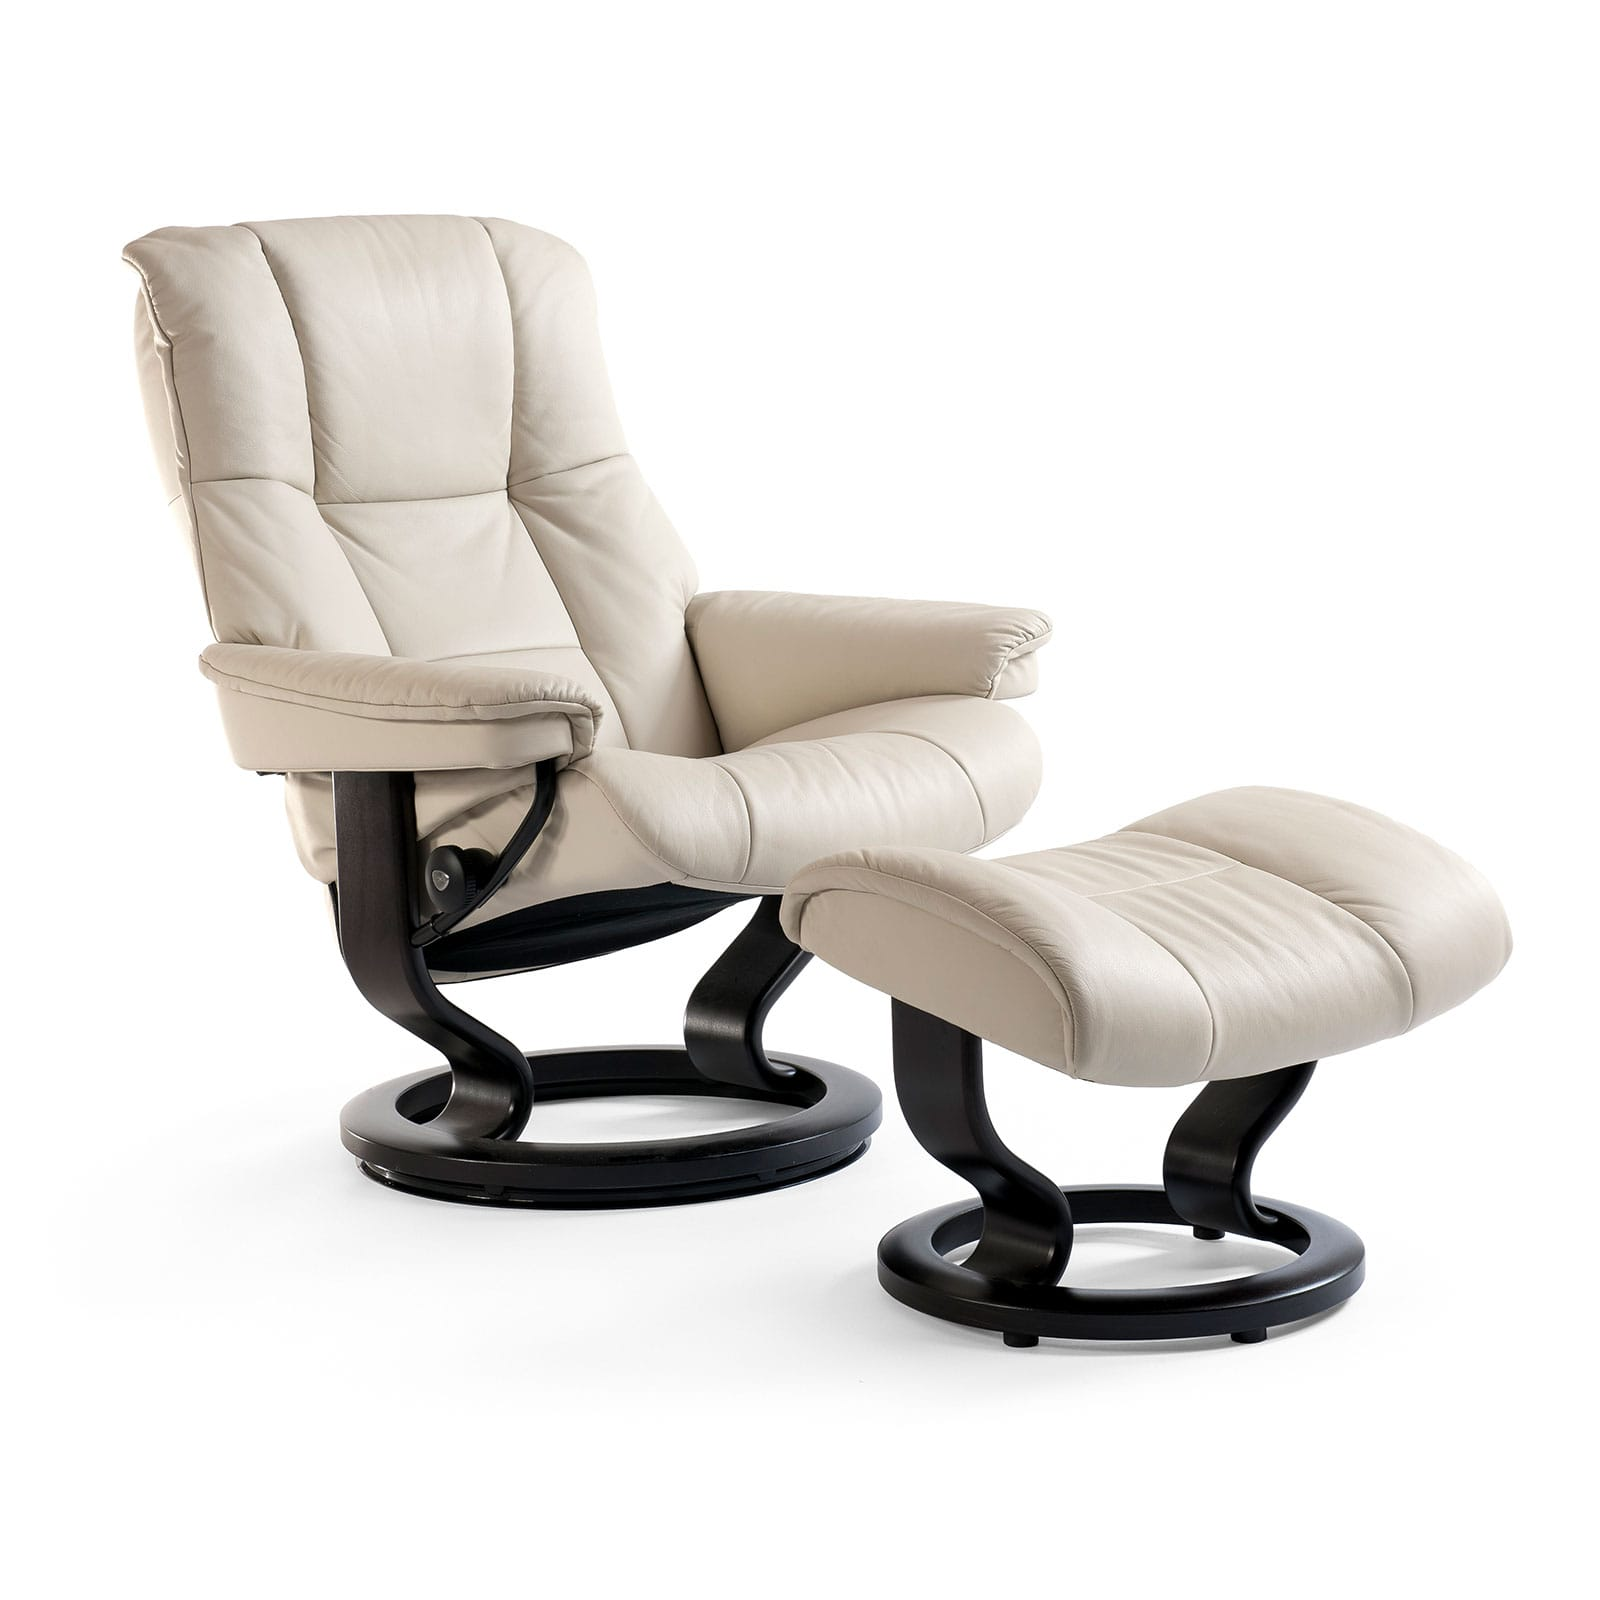 stressless sessel mayfair paloma light grey classic schwarz hocker. Black Bedroom Furniture Sets. Home Design Ideas